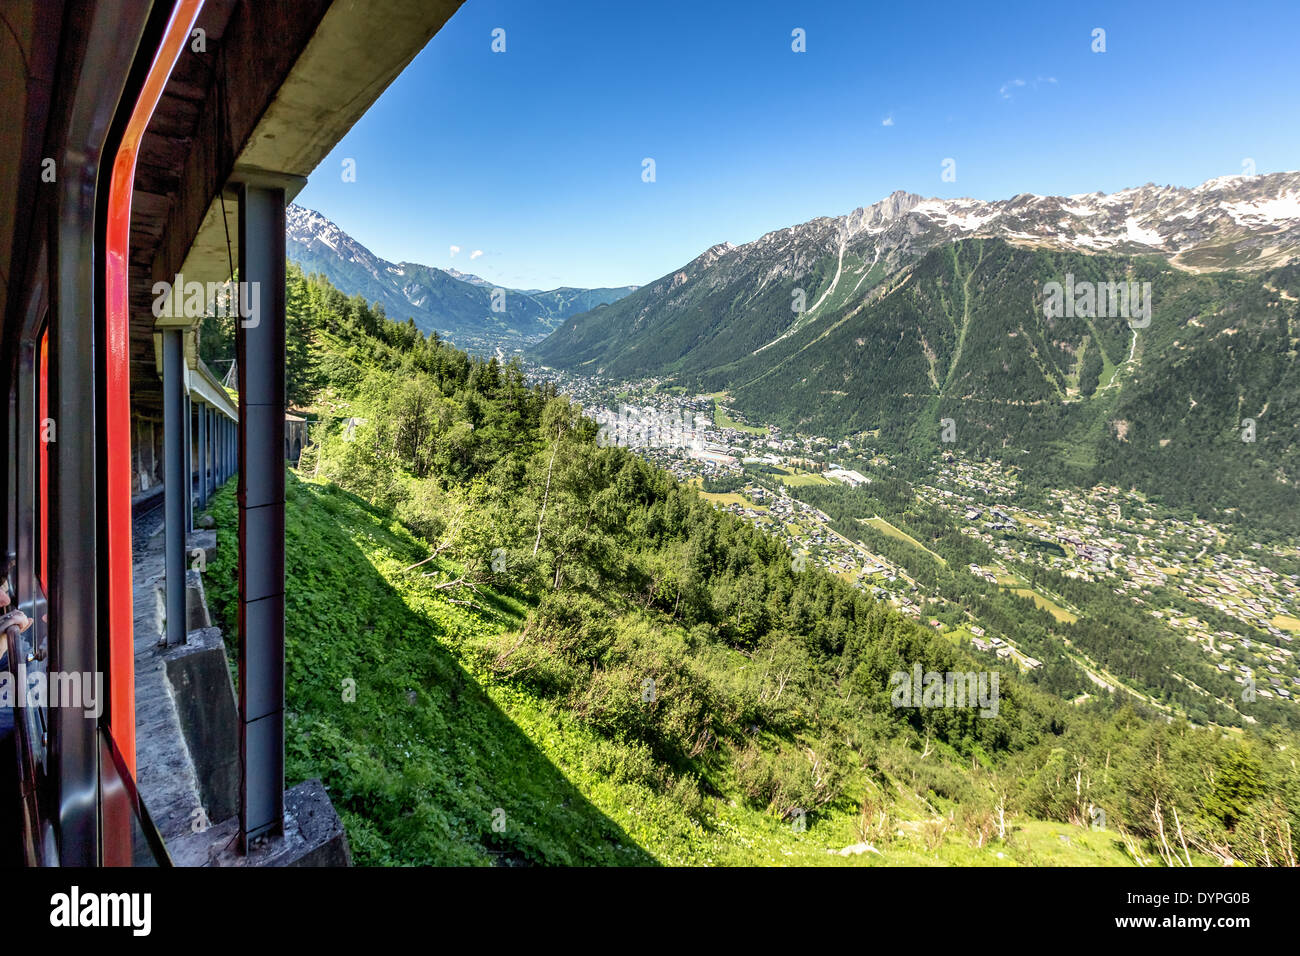 On the way to Mer de Glace glacier in a cog wheel train over looking Chamonix, France, EU Stock Photo